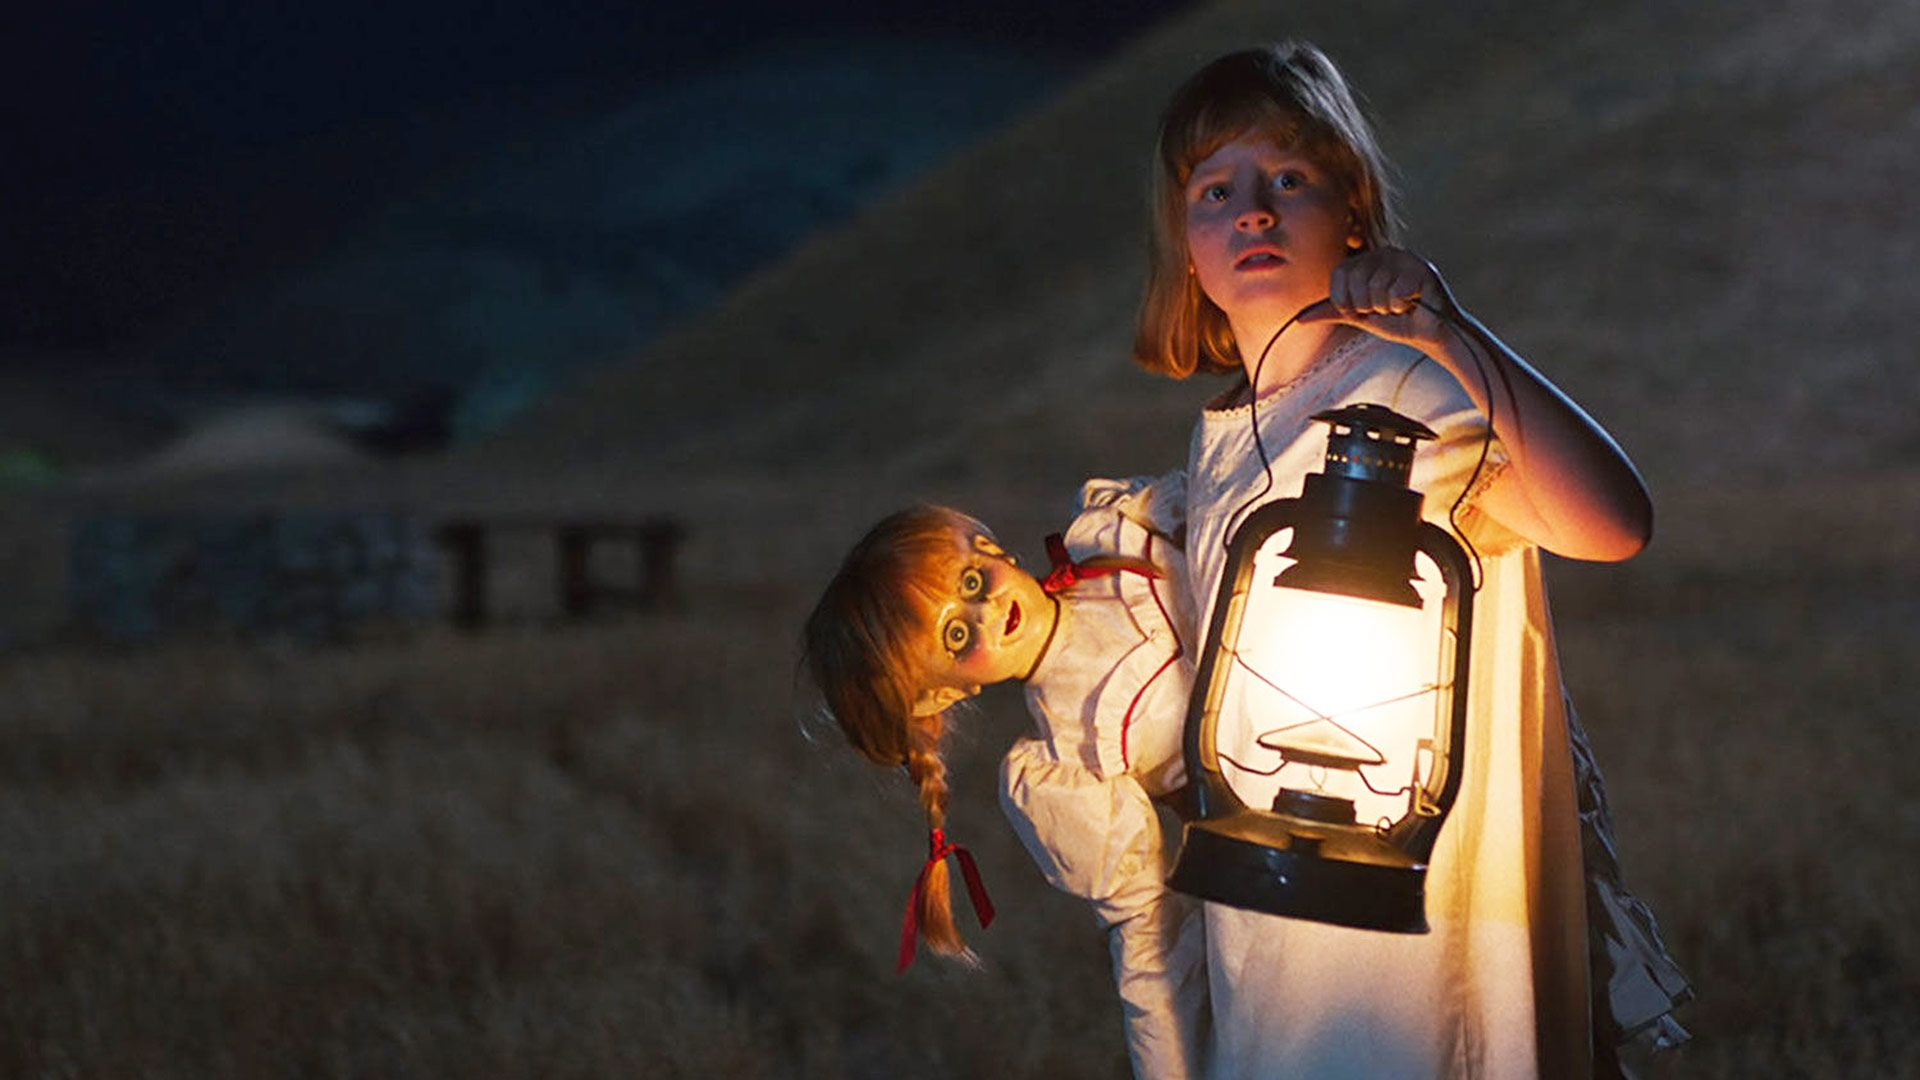 The Conjuring Movies in Order: Annabelle: Creation